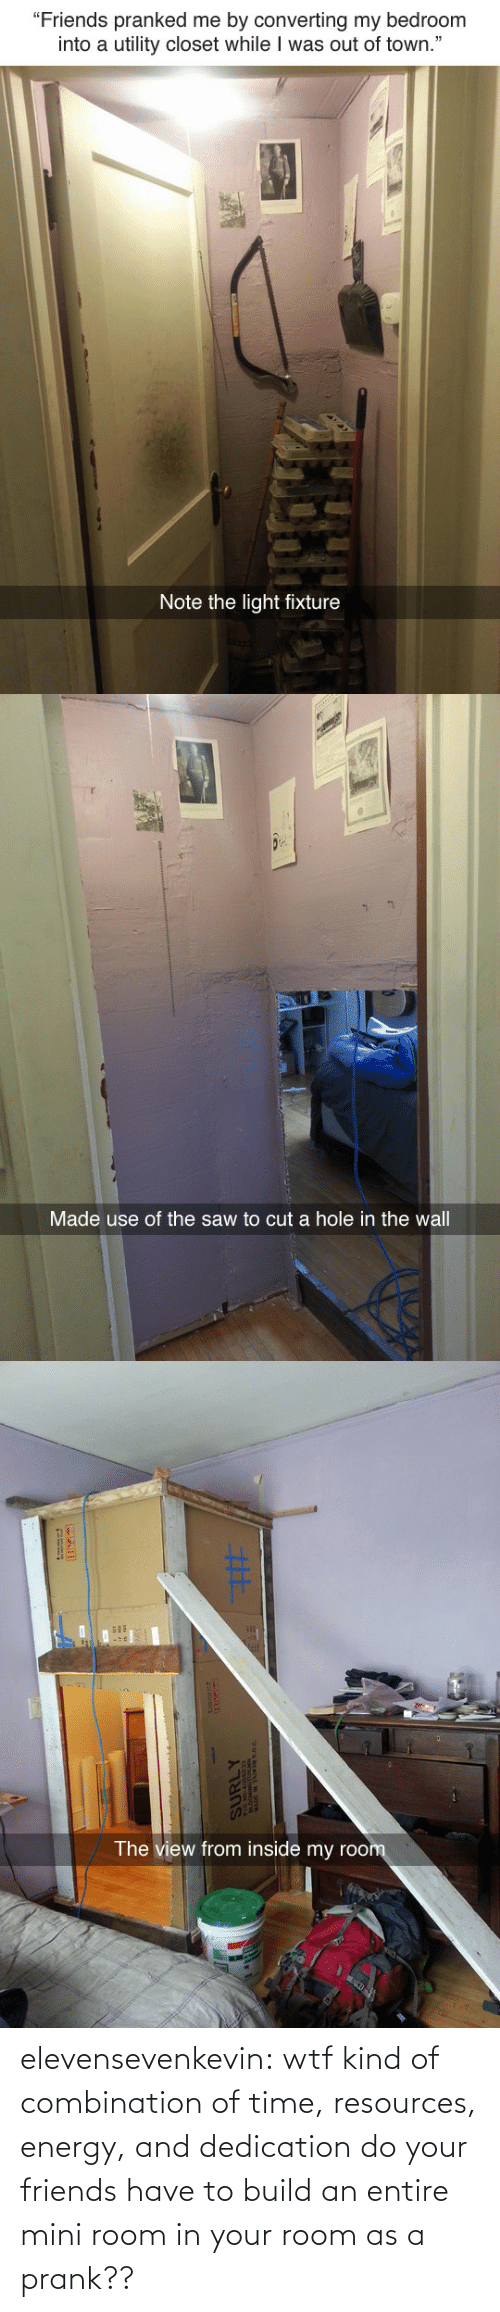 """the wall: """"Friends pranked me by converting my bedroom  into a utility closet while I was out of town.""""  Note the light fixture   Made use of the saw to cut a hole in the wall   The view from inside my roo elevensevenkevin: wtf kind of combination of time, resources, energy, and dedication do your friends have to build an entire mini room in your room as a prank??"""